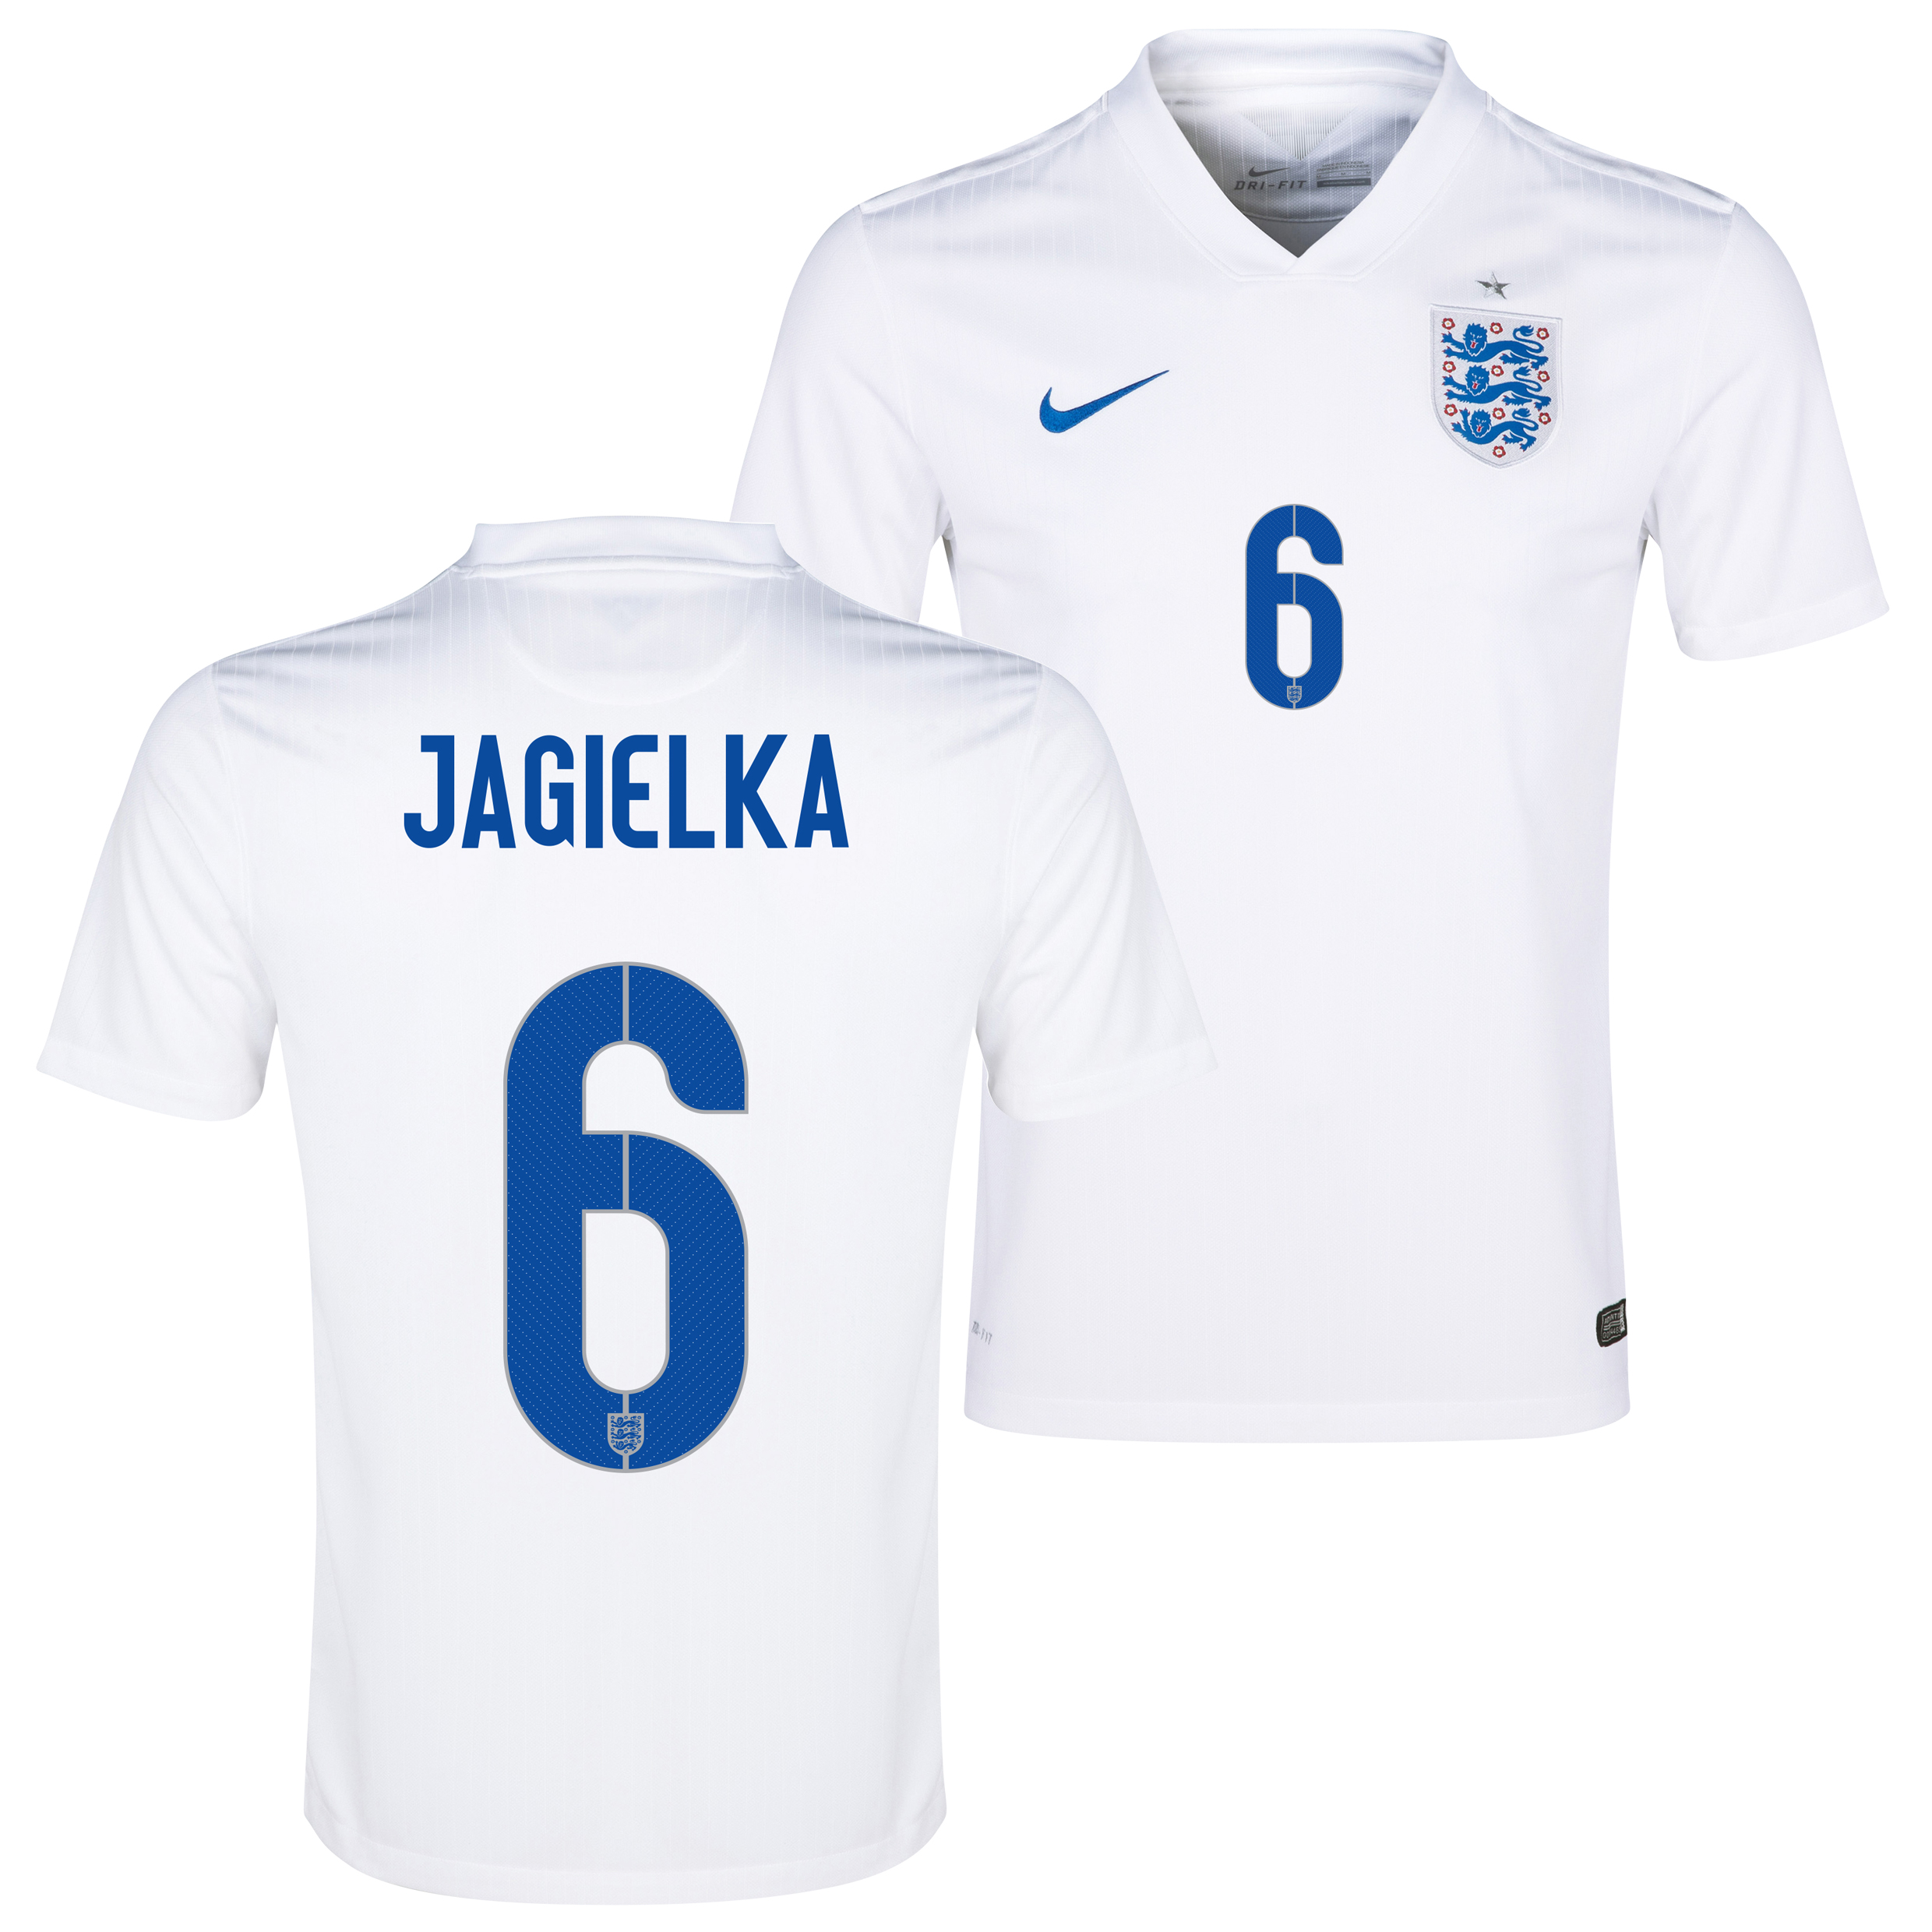 England Match Home Shirt 2014/15 White with Jagielka 6 printing